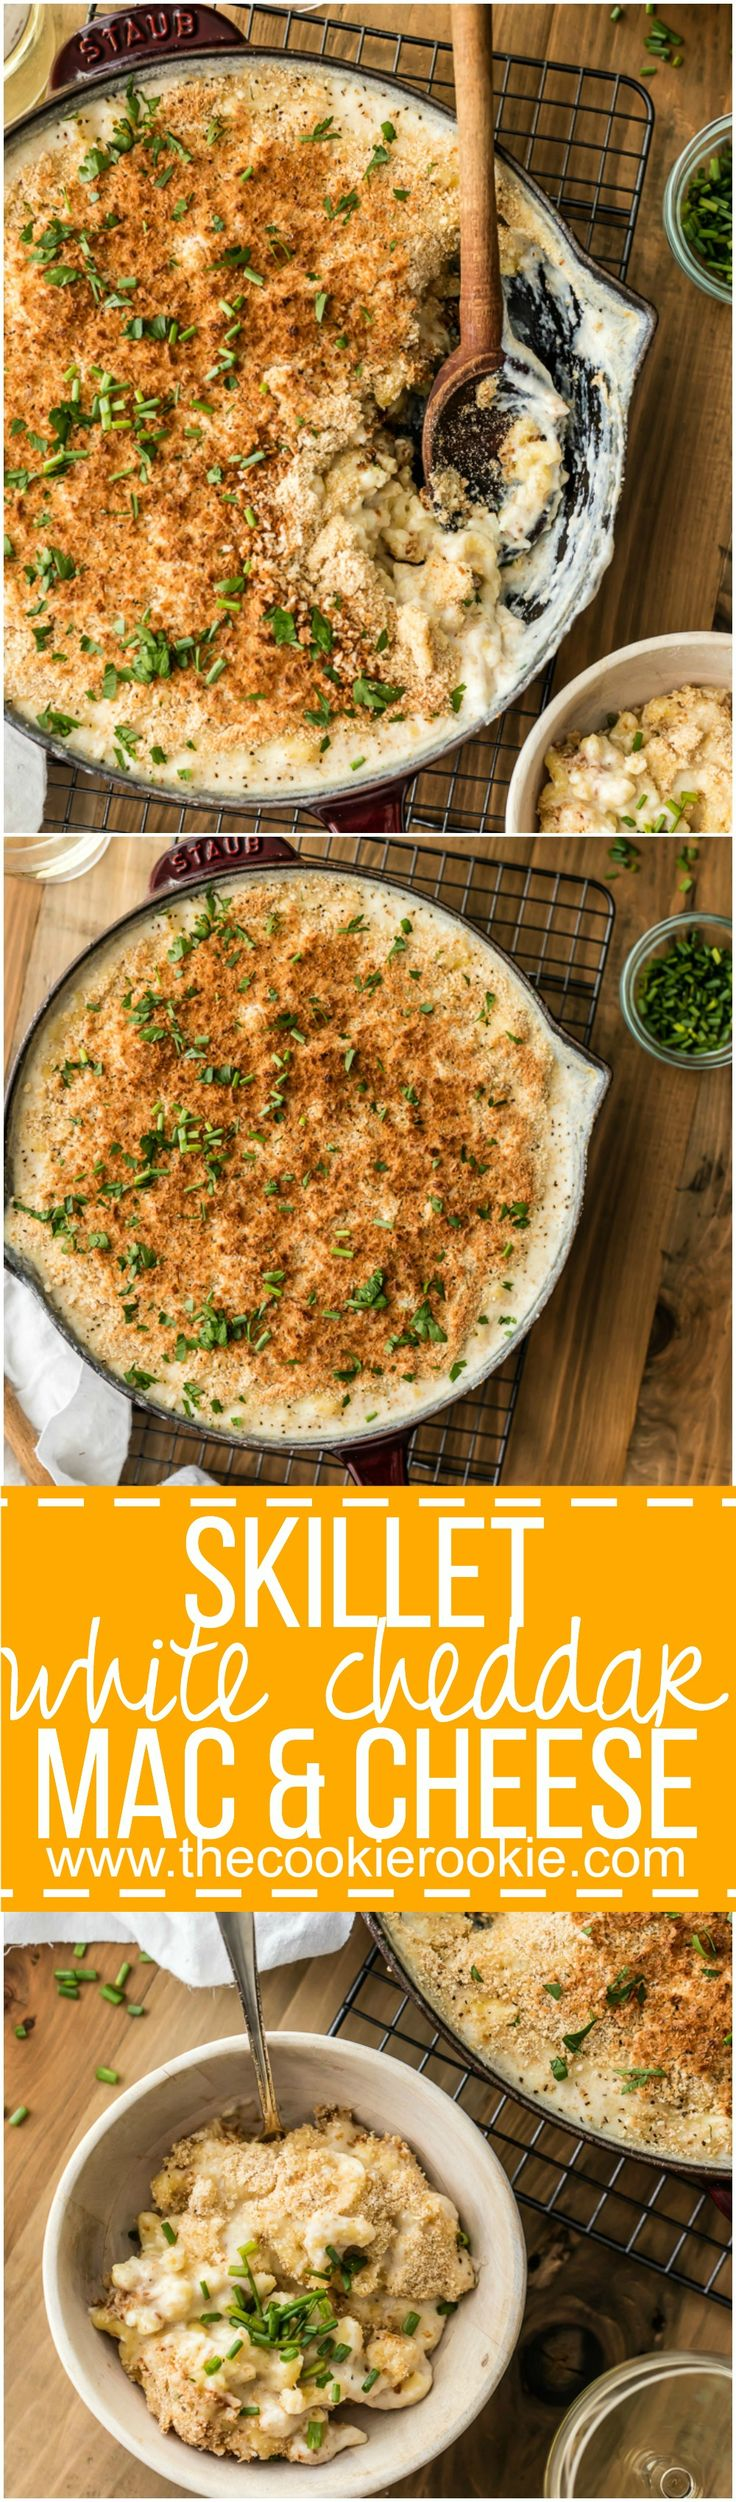 Large Batch Skillet White Cheddar Mac and Cheese is the perfect EASY ONE POT DINNER for any week night! So much cheese and so much flavor! Made in minutes in on